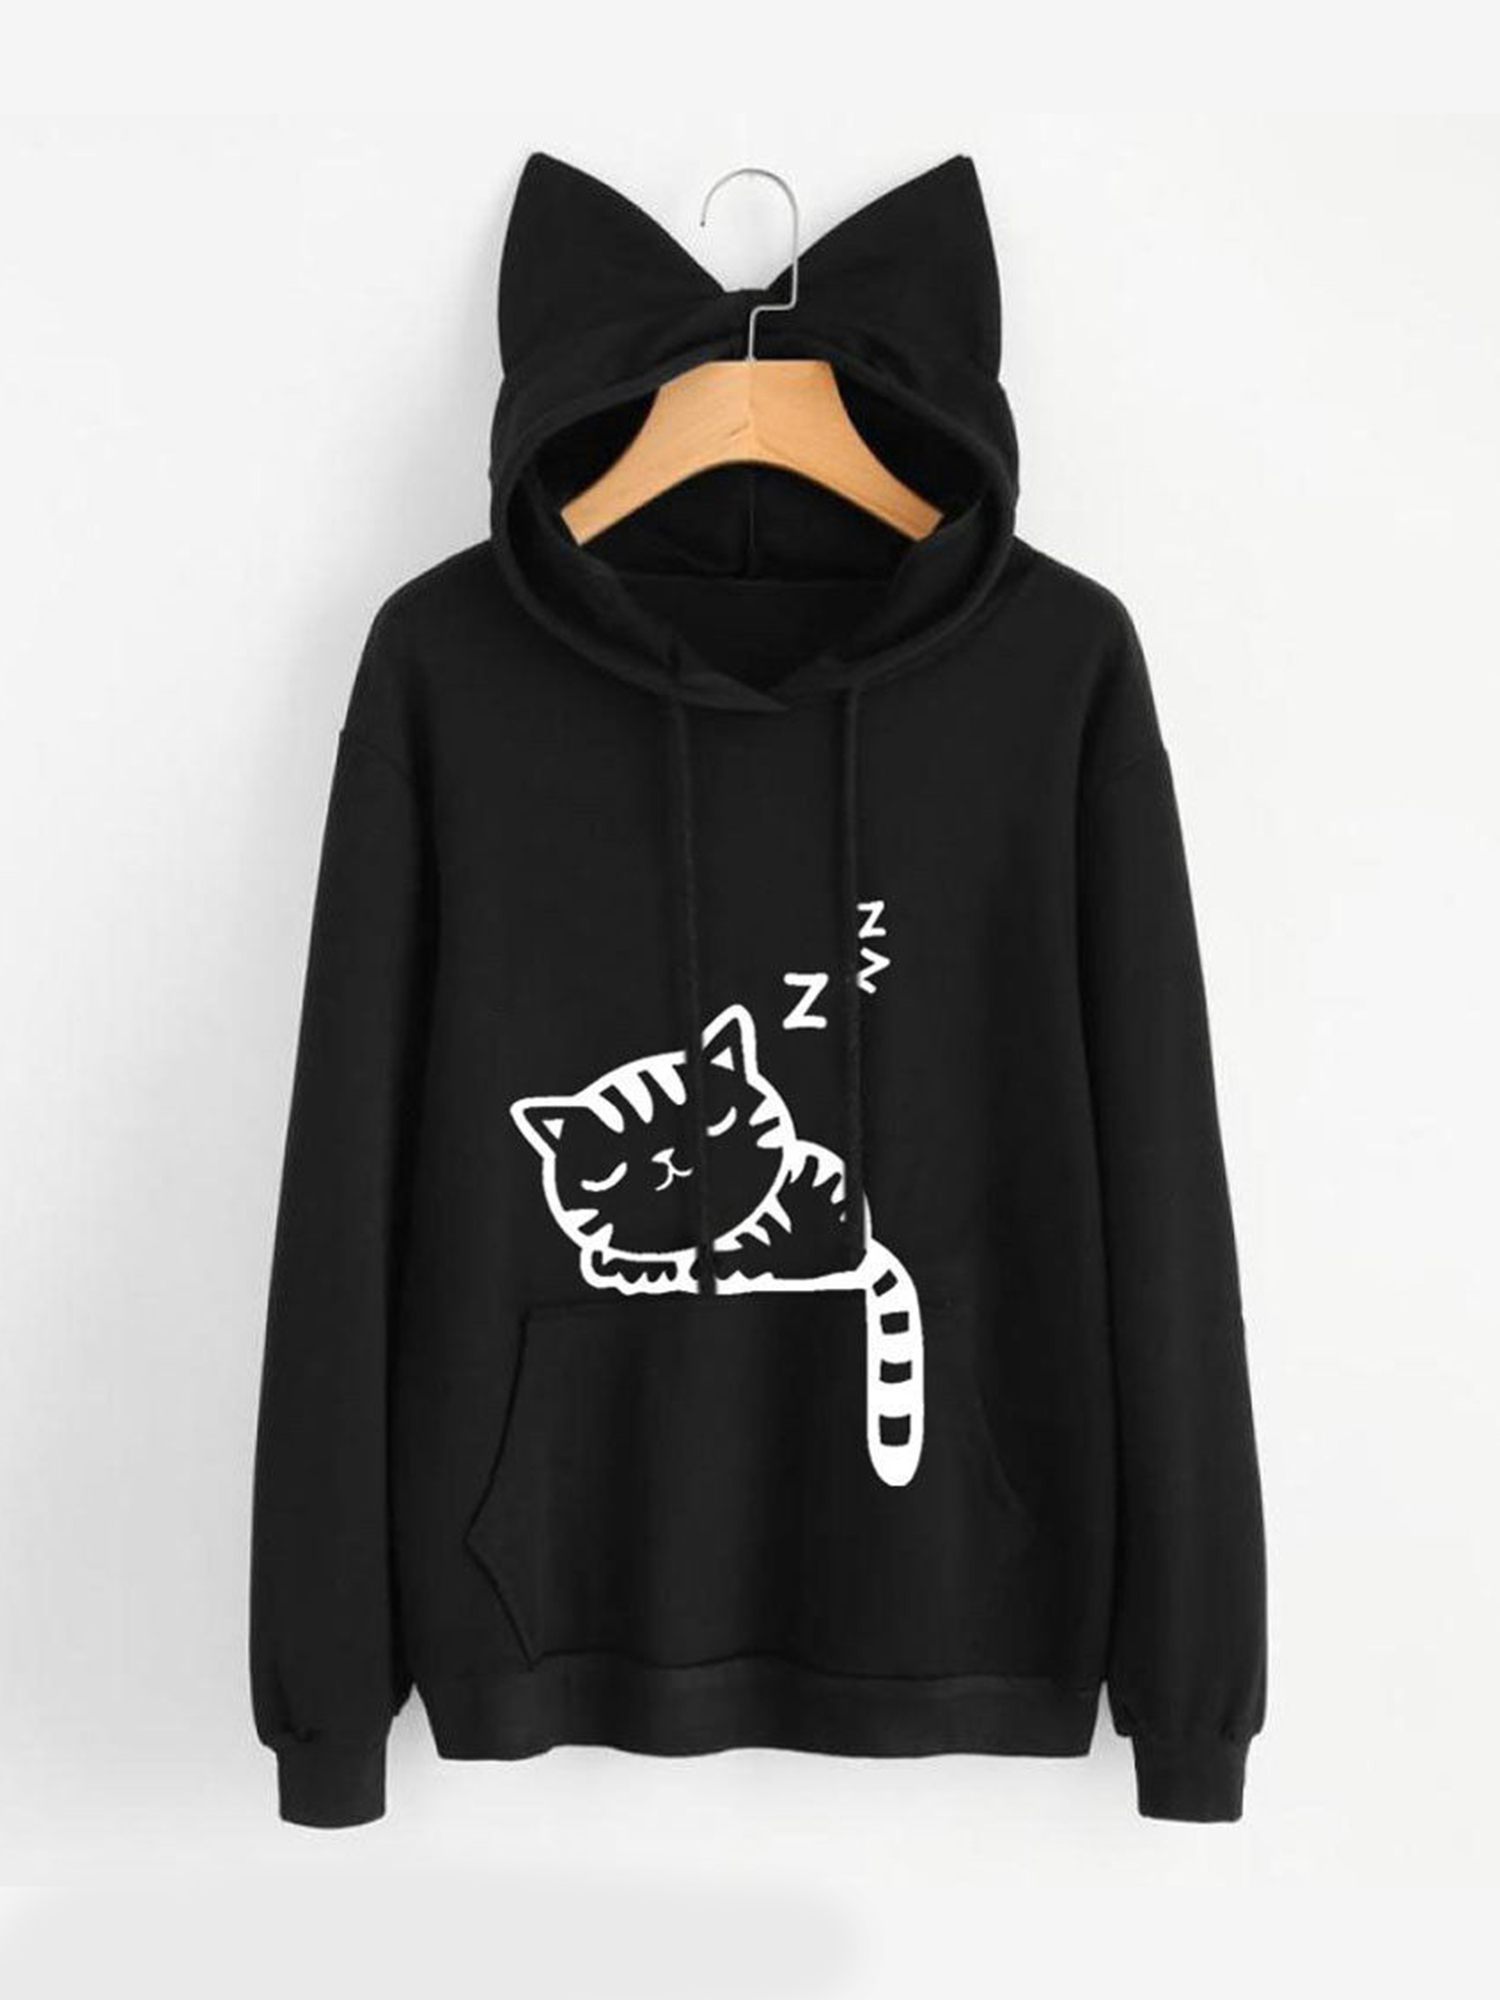 b3cc9162a Topcobe - Clothes for Women on Clearance! Women's Pullover Hoodie for Women,  Long Sleeve Cat Printed Hooded Sweatshirts for Juniors, Black Gift Hoodies  ...